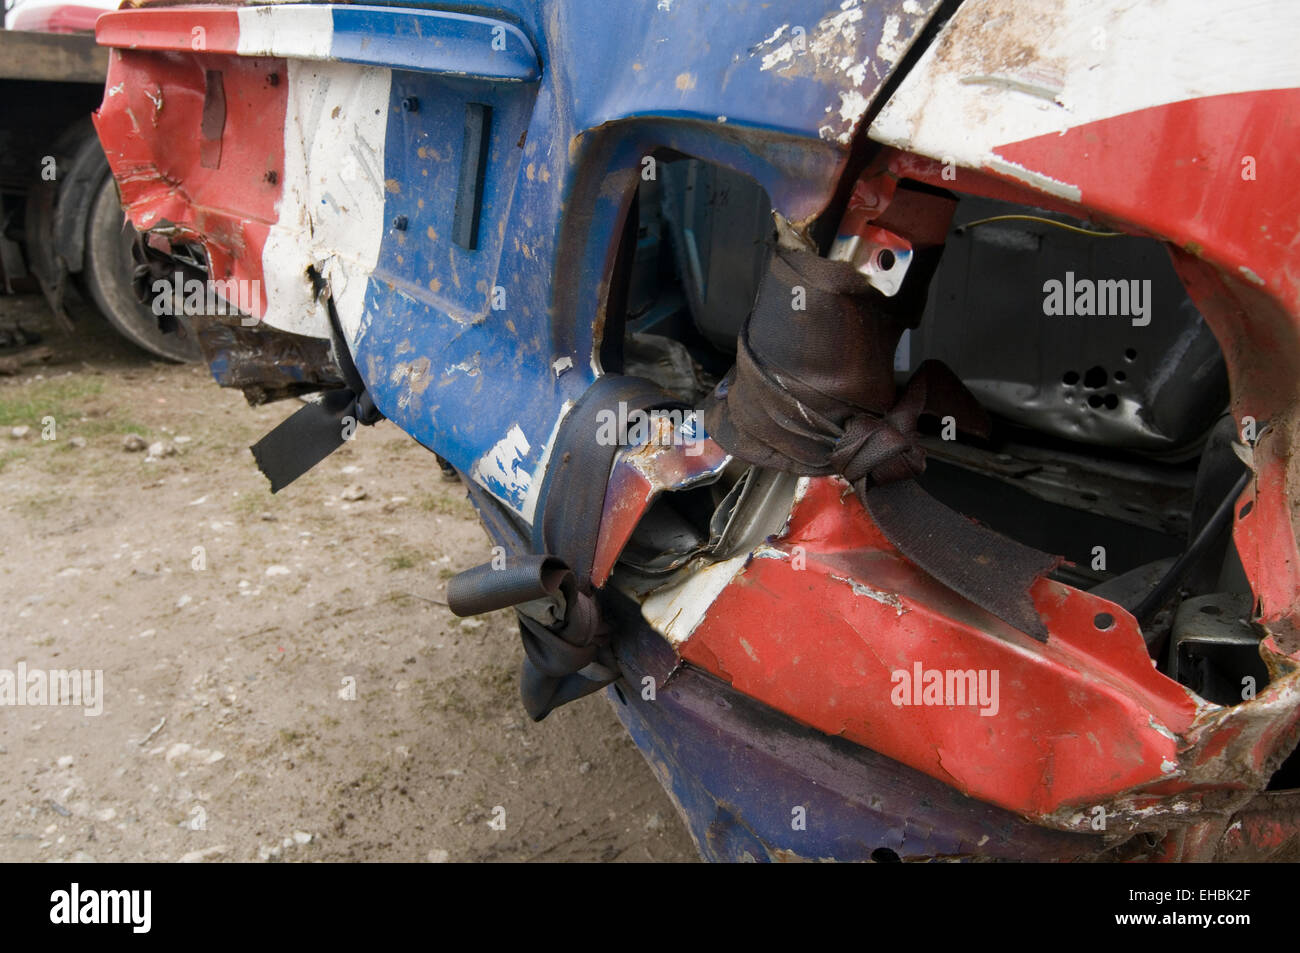 seat belt belts seatbelts seatbelt material used to tie the boot shut on demolition derby demo derby car smashed - Stock Image